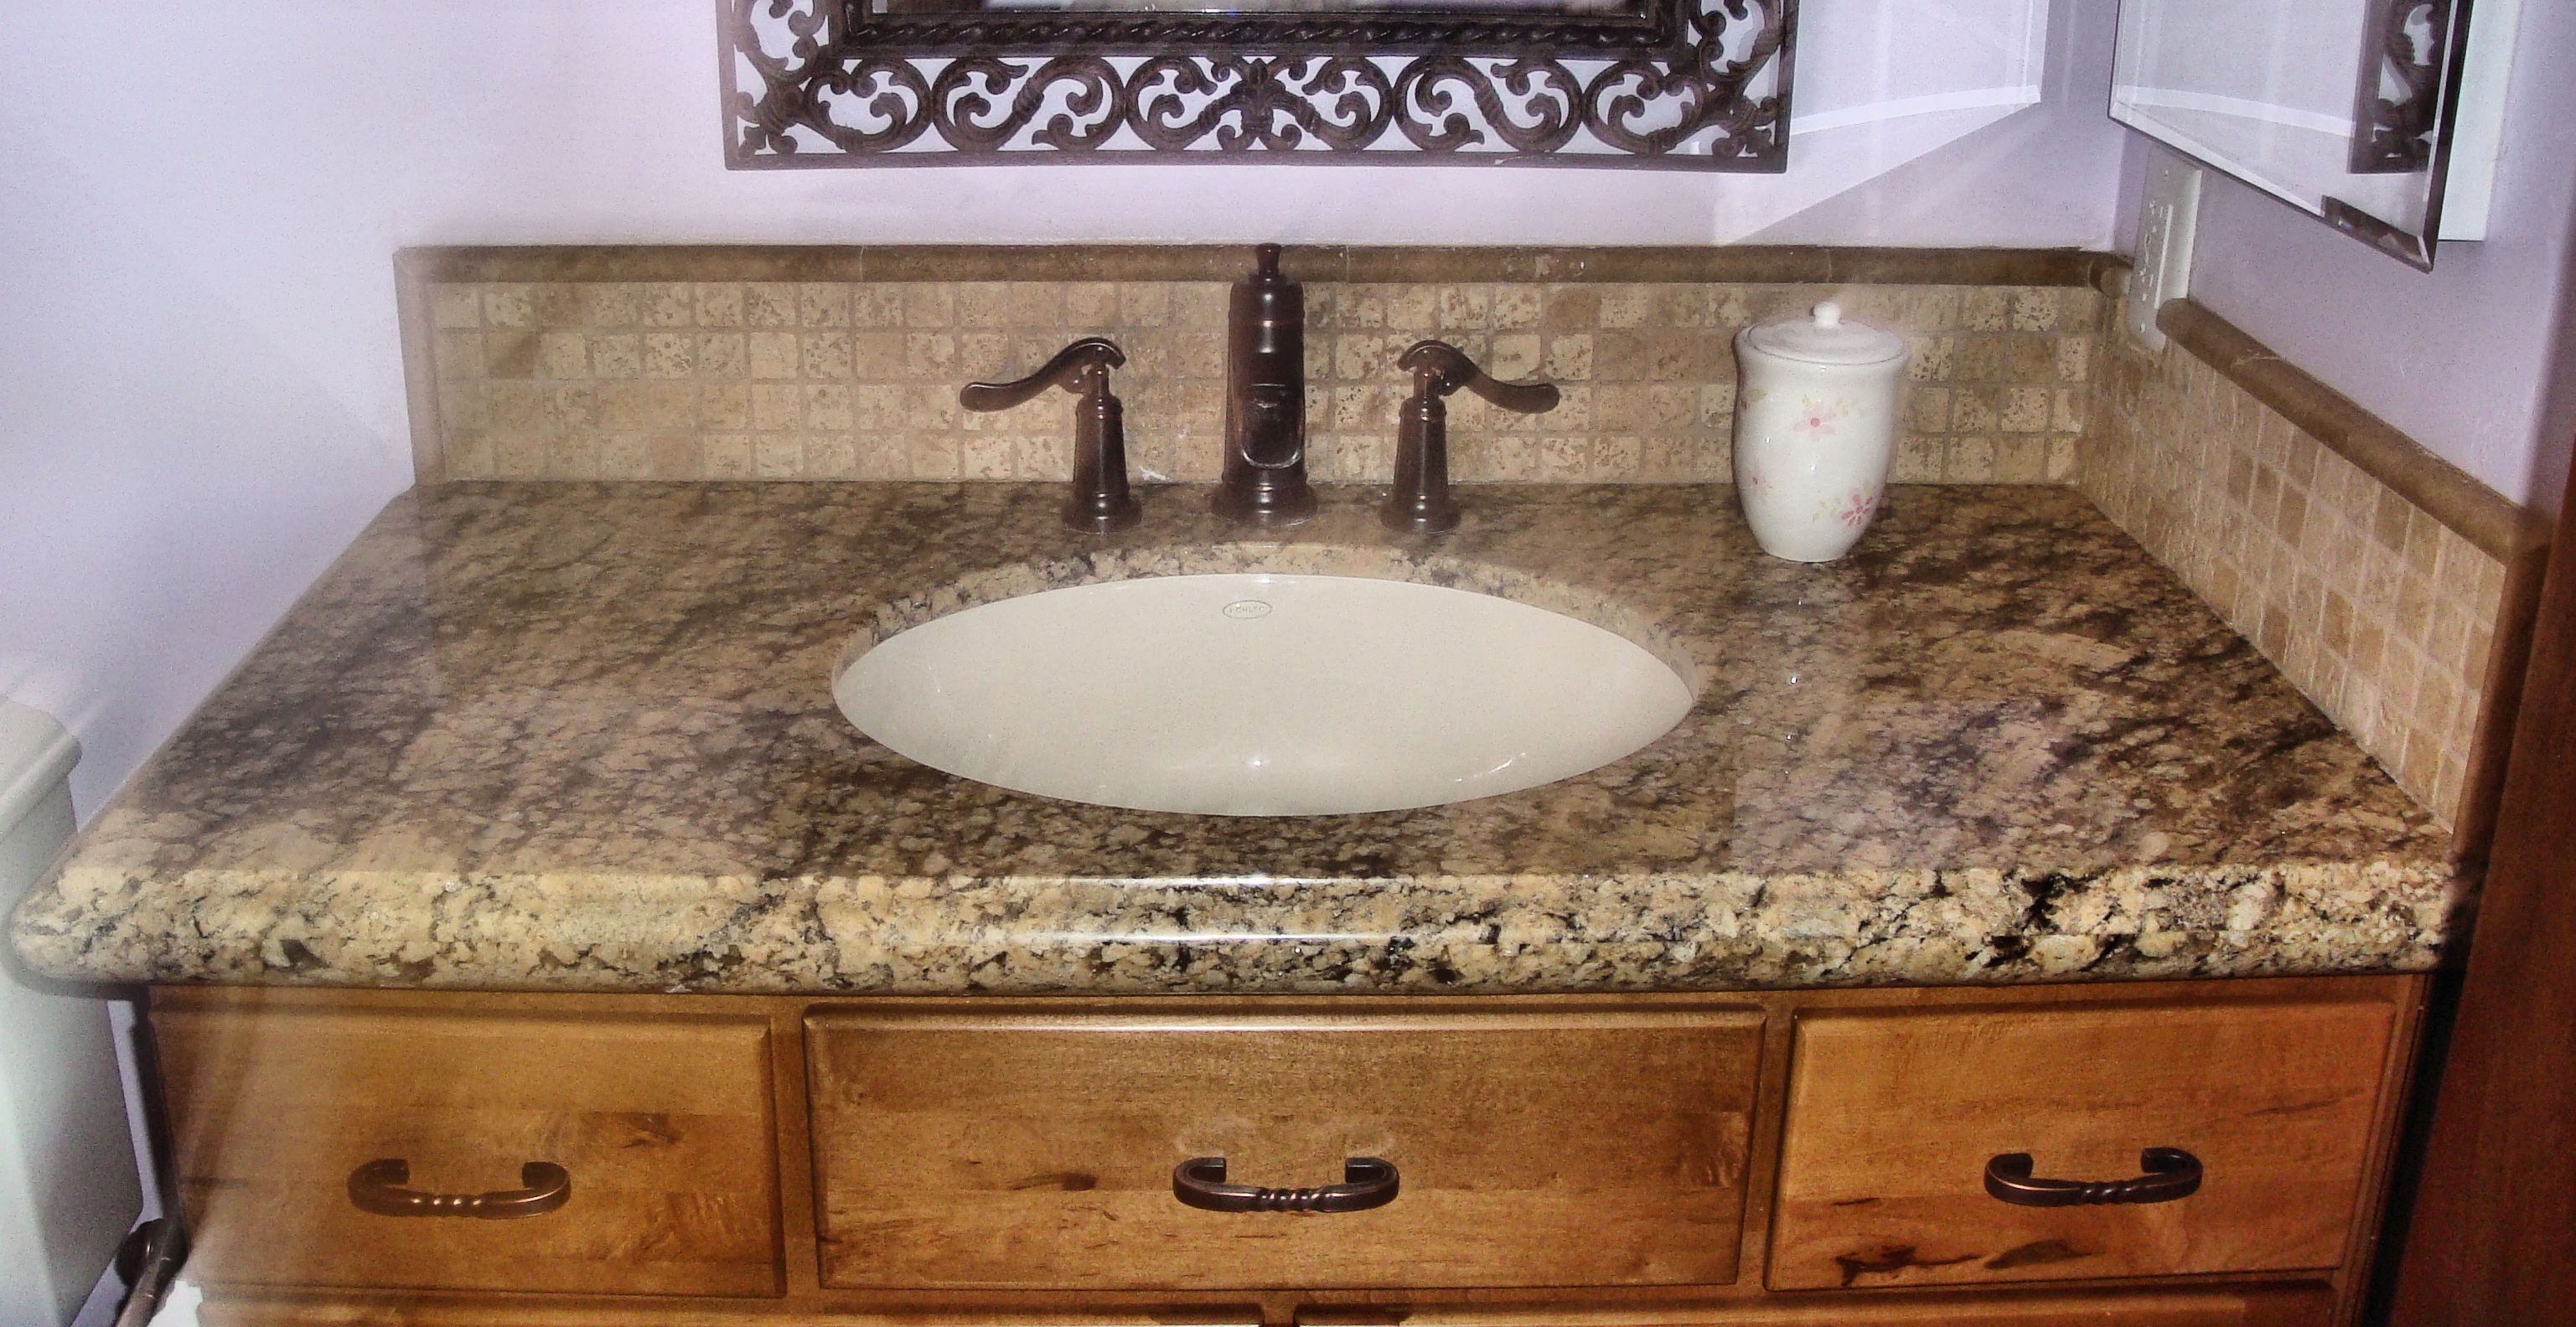 Granite Bathroom Countertops Beige Granite Bathroom Countertop Las Vegas Granite Countertops Las